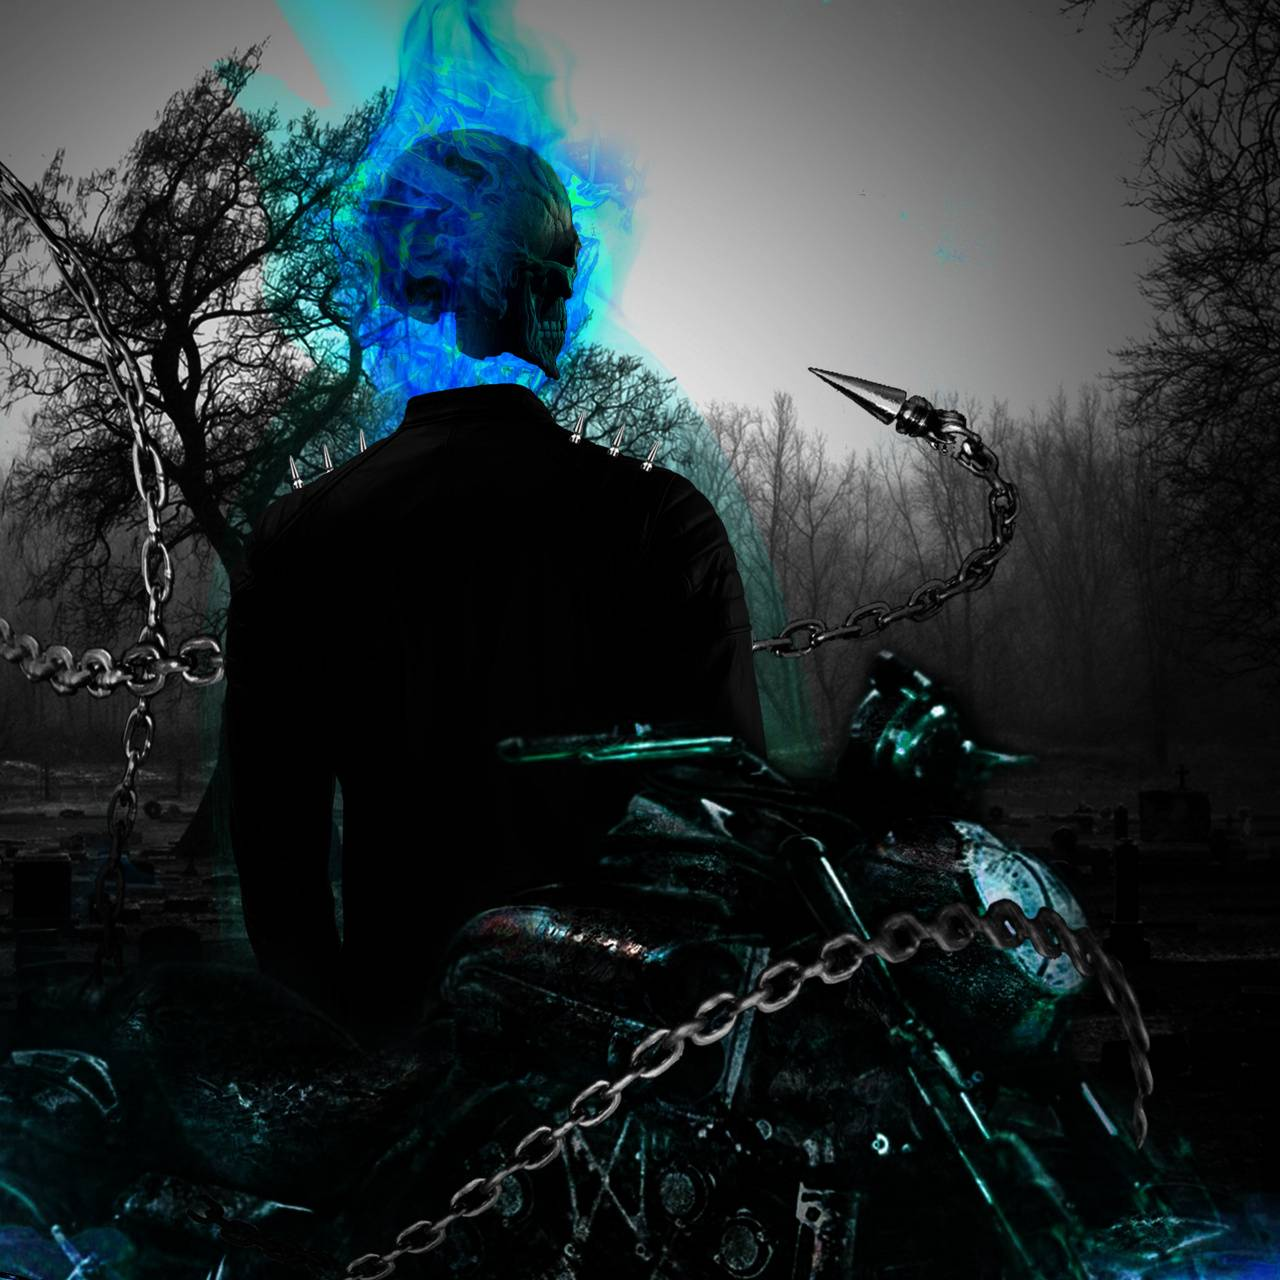 1280x1280 Blue Ghost Rider wallpaper by AithusaComics - 40 - Free on ZEDGE™